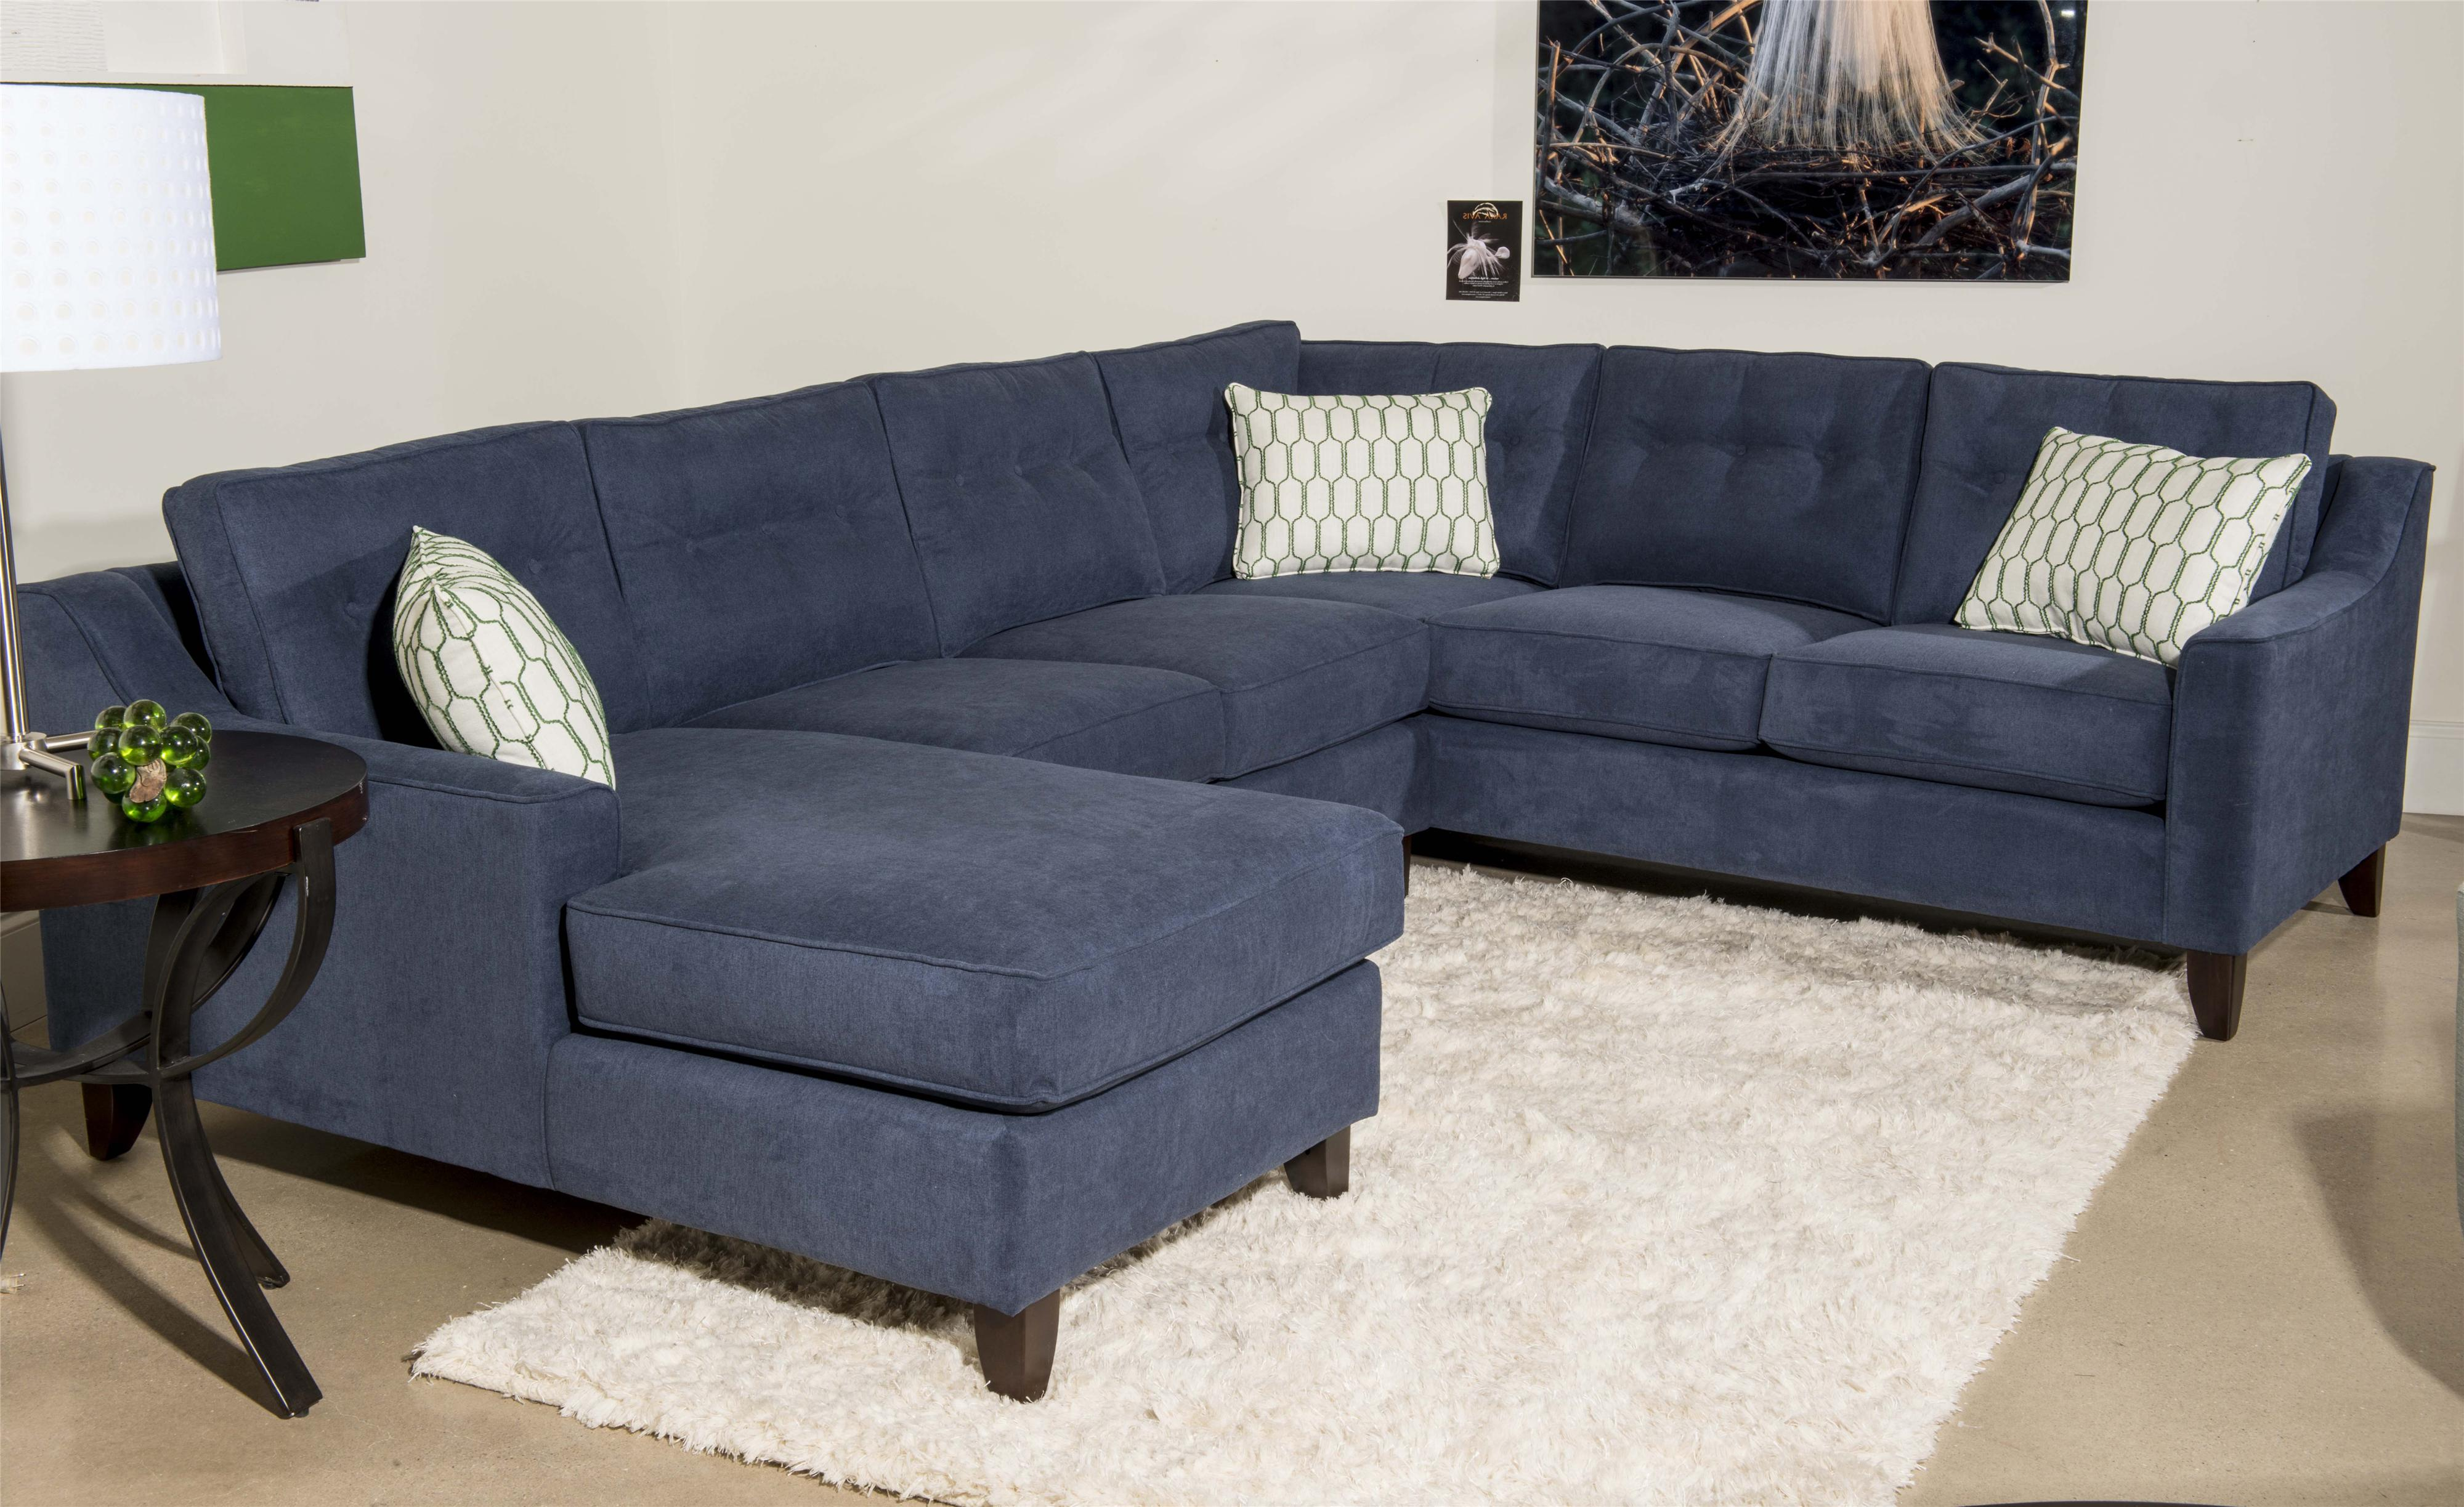 Audrina Contermporary 3 Piece Sectional Sofa by Klaussner at Northeast Factory Direct